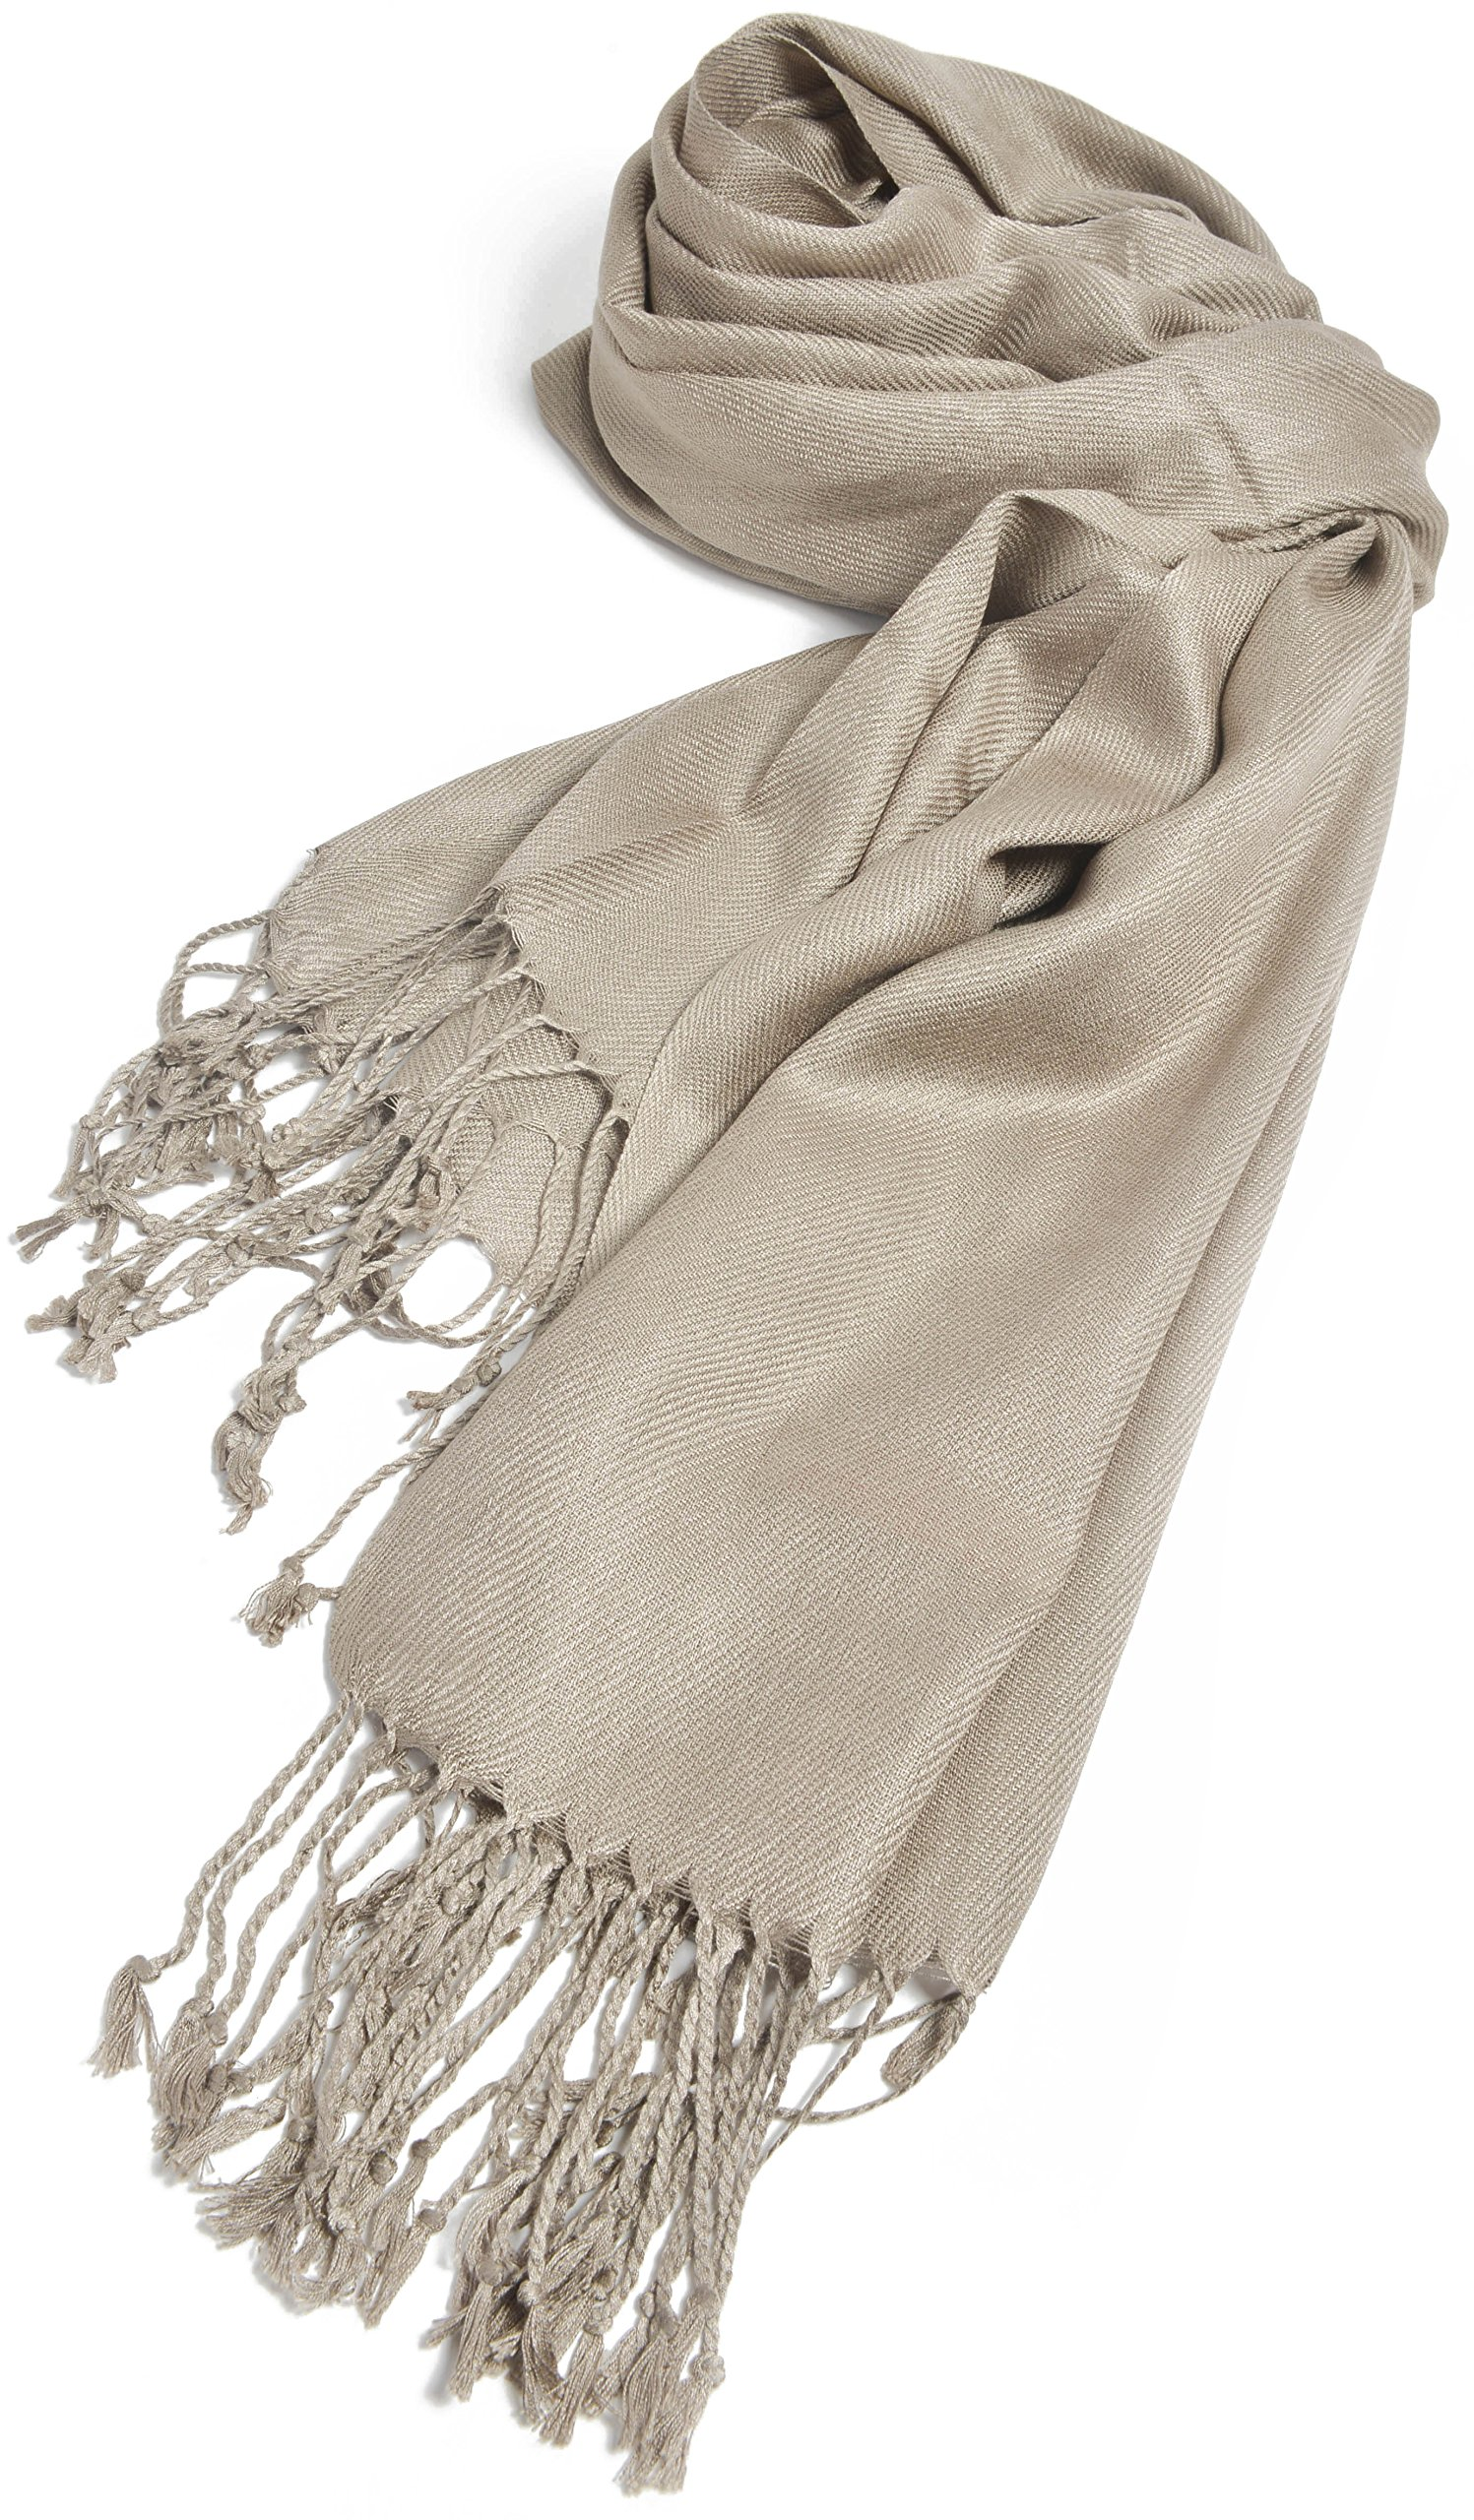 Premium Large Soft Silky Pashmina Shawl Wrap Scarf in Solid Colors (Taupe)